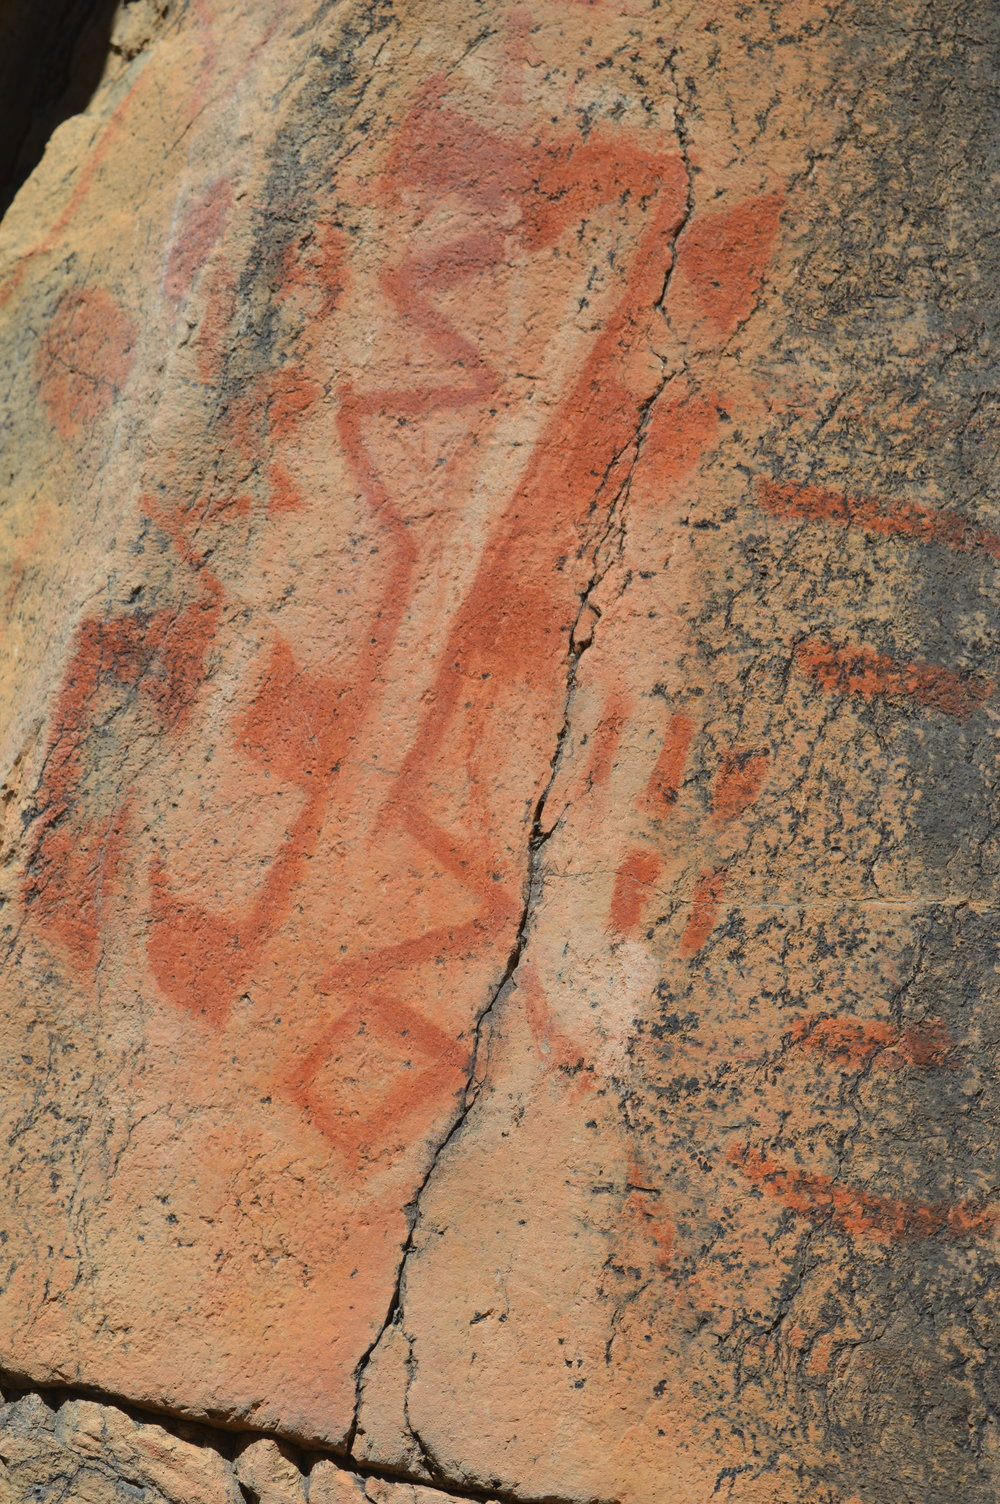 Cave paintings at La Bocana